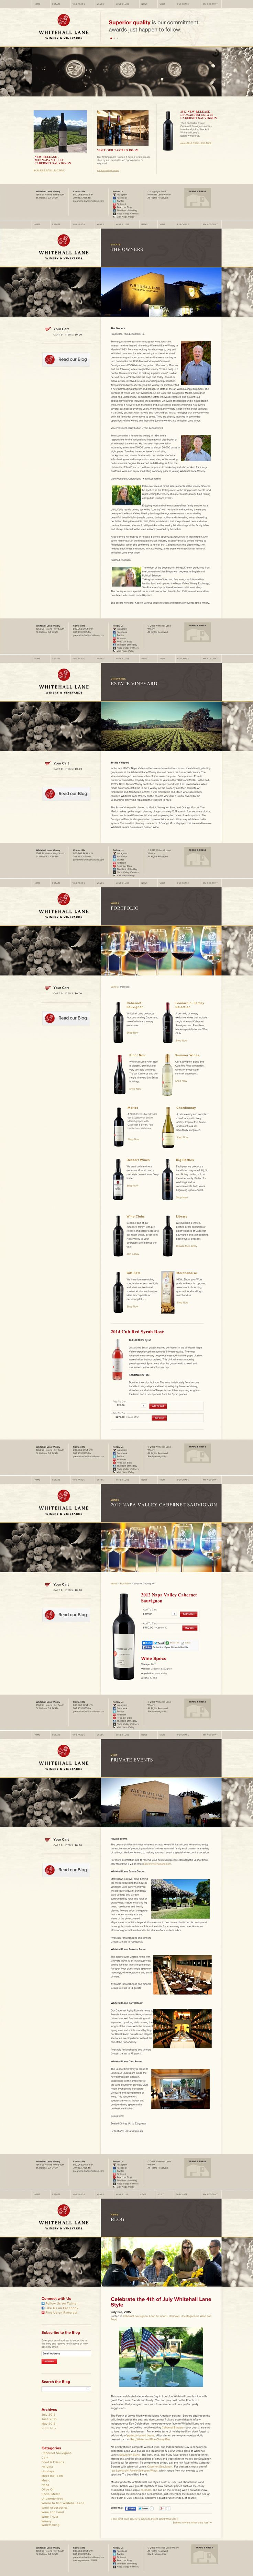 Whitehall Lane Winery   Website   by designthis!